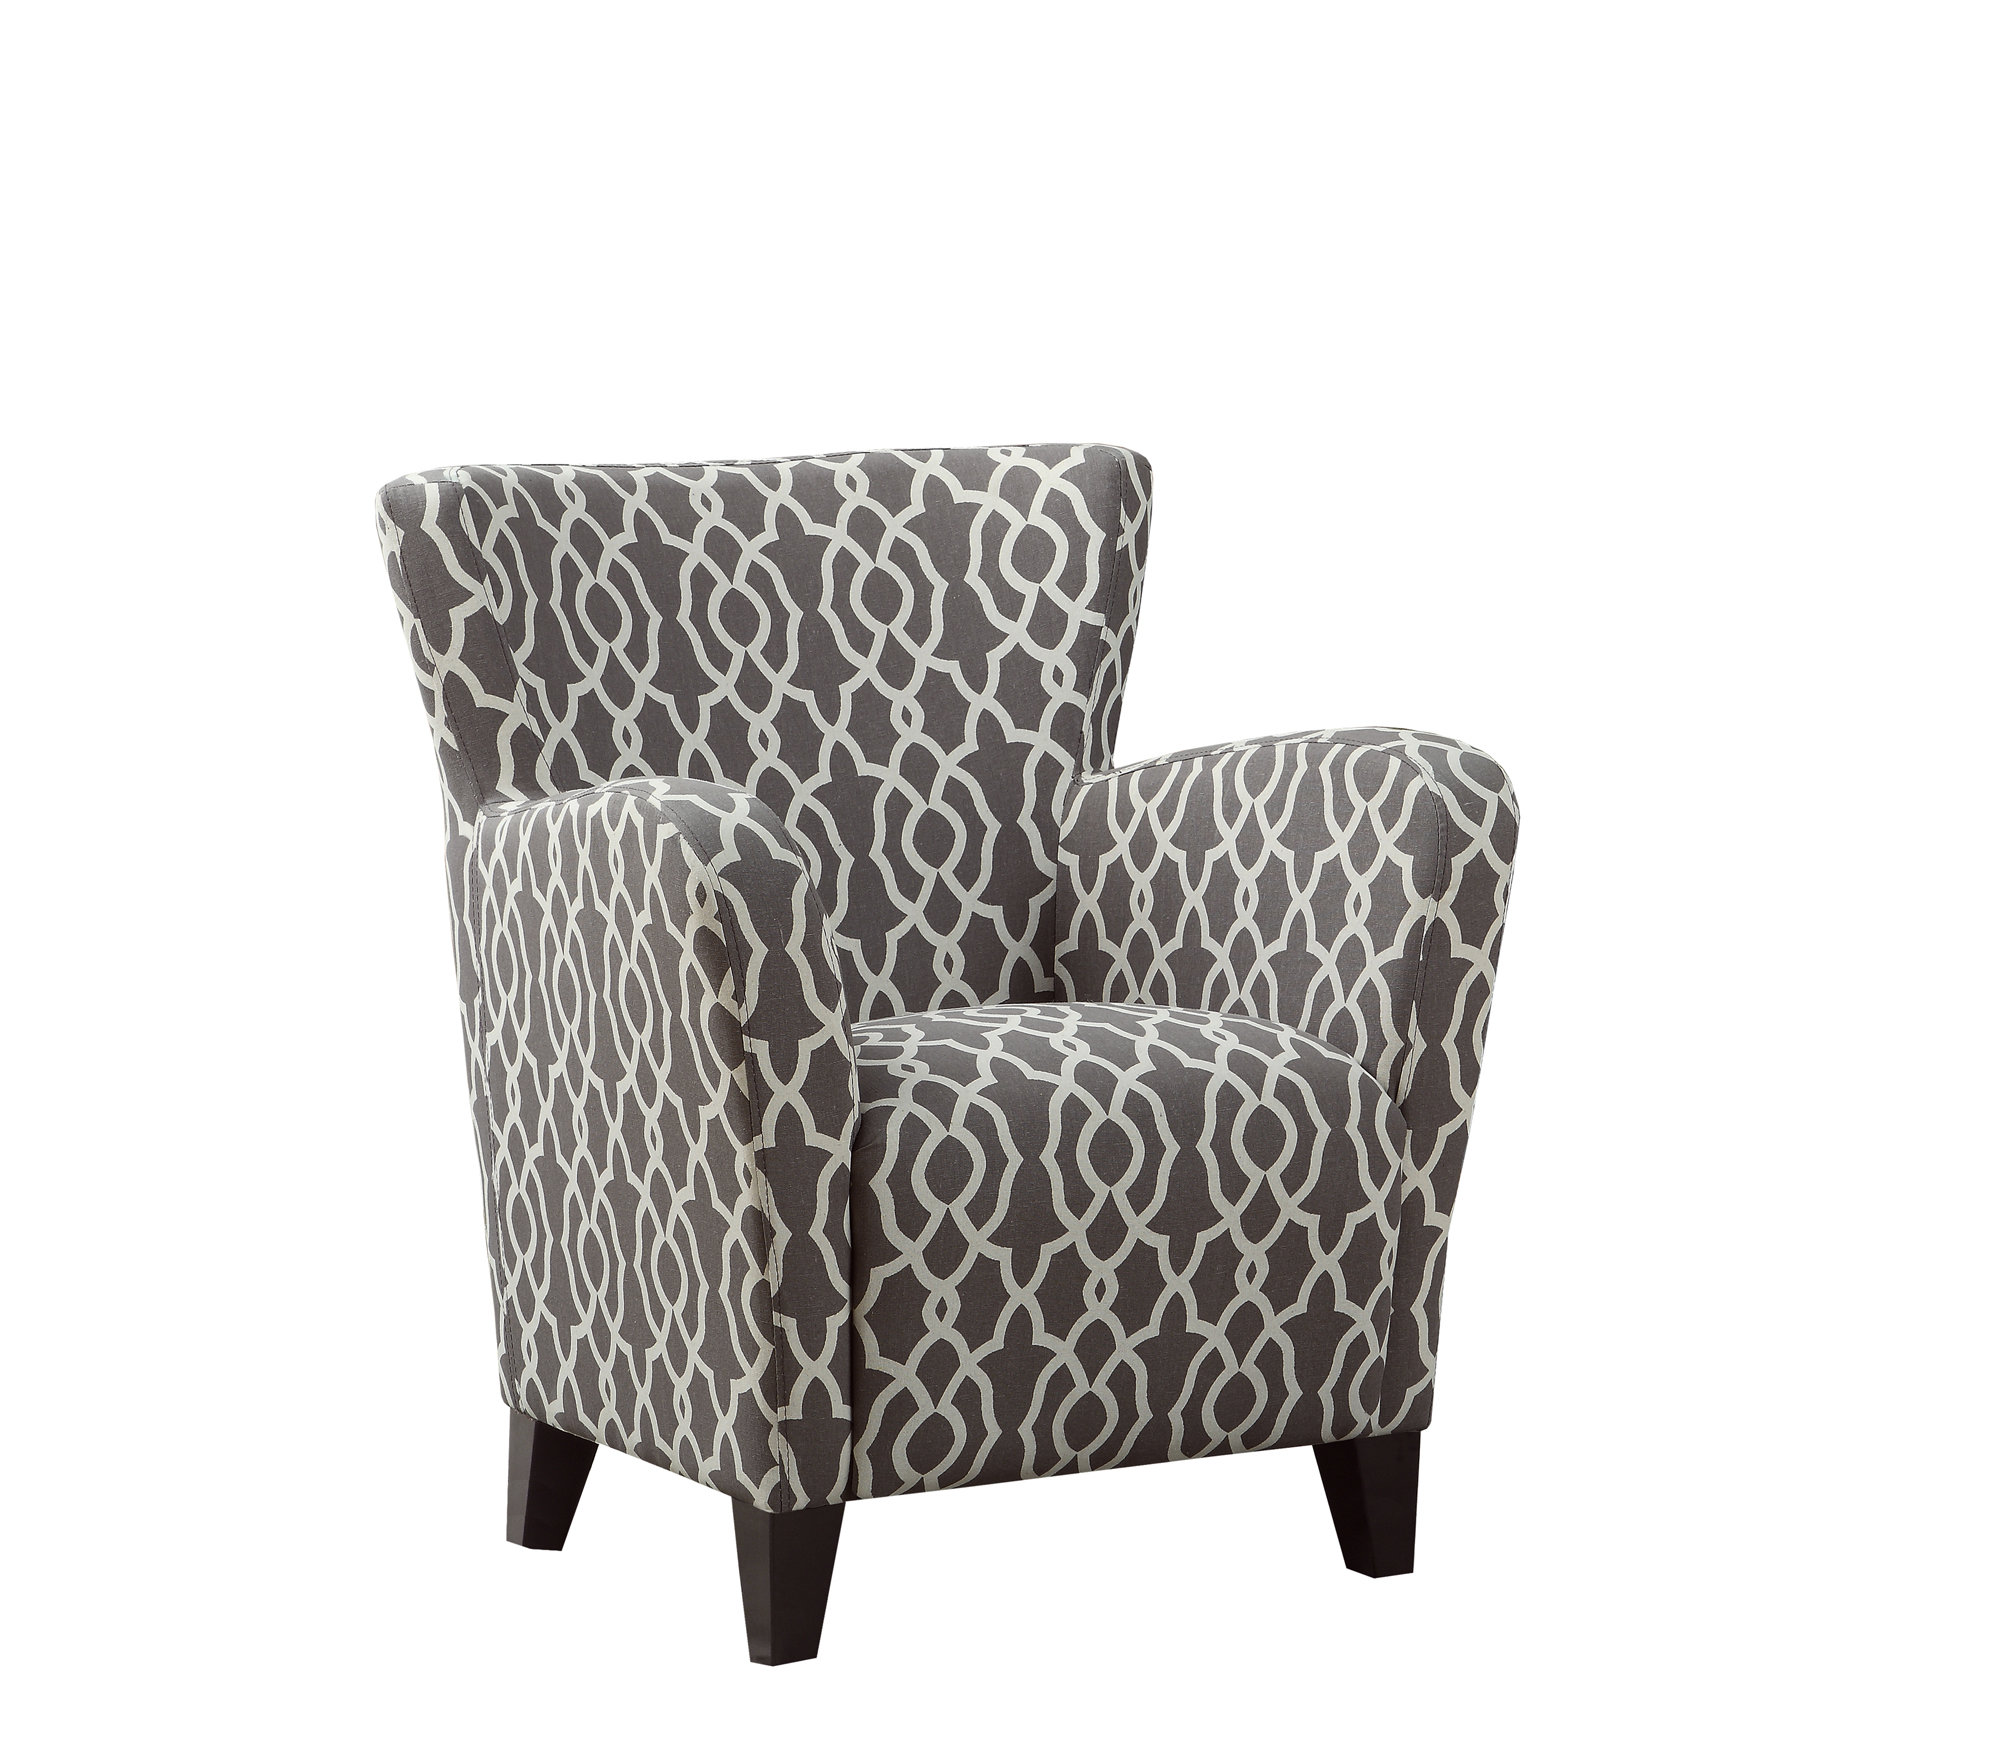 Fantastic Accent Chair Brown Bell Pattern Fabric Dailytribune Chair Design For Home Dailytribuneorg